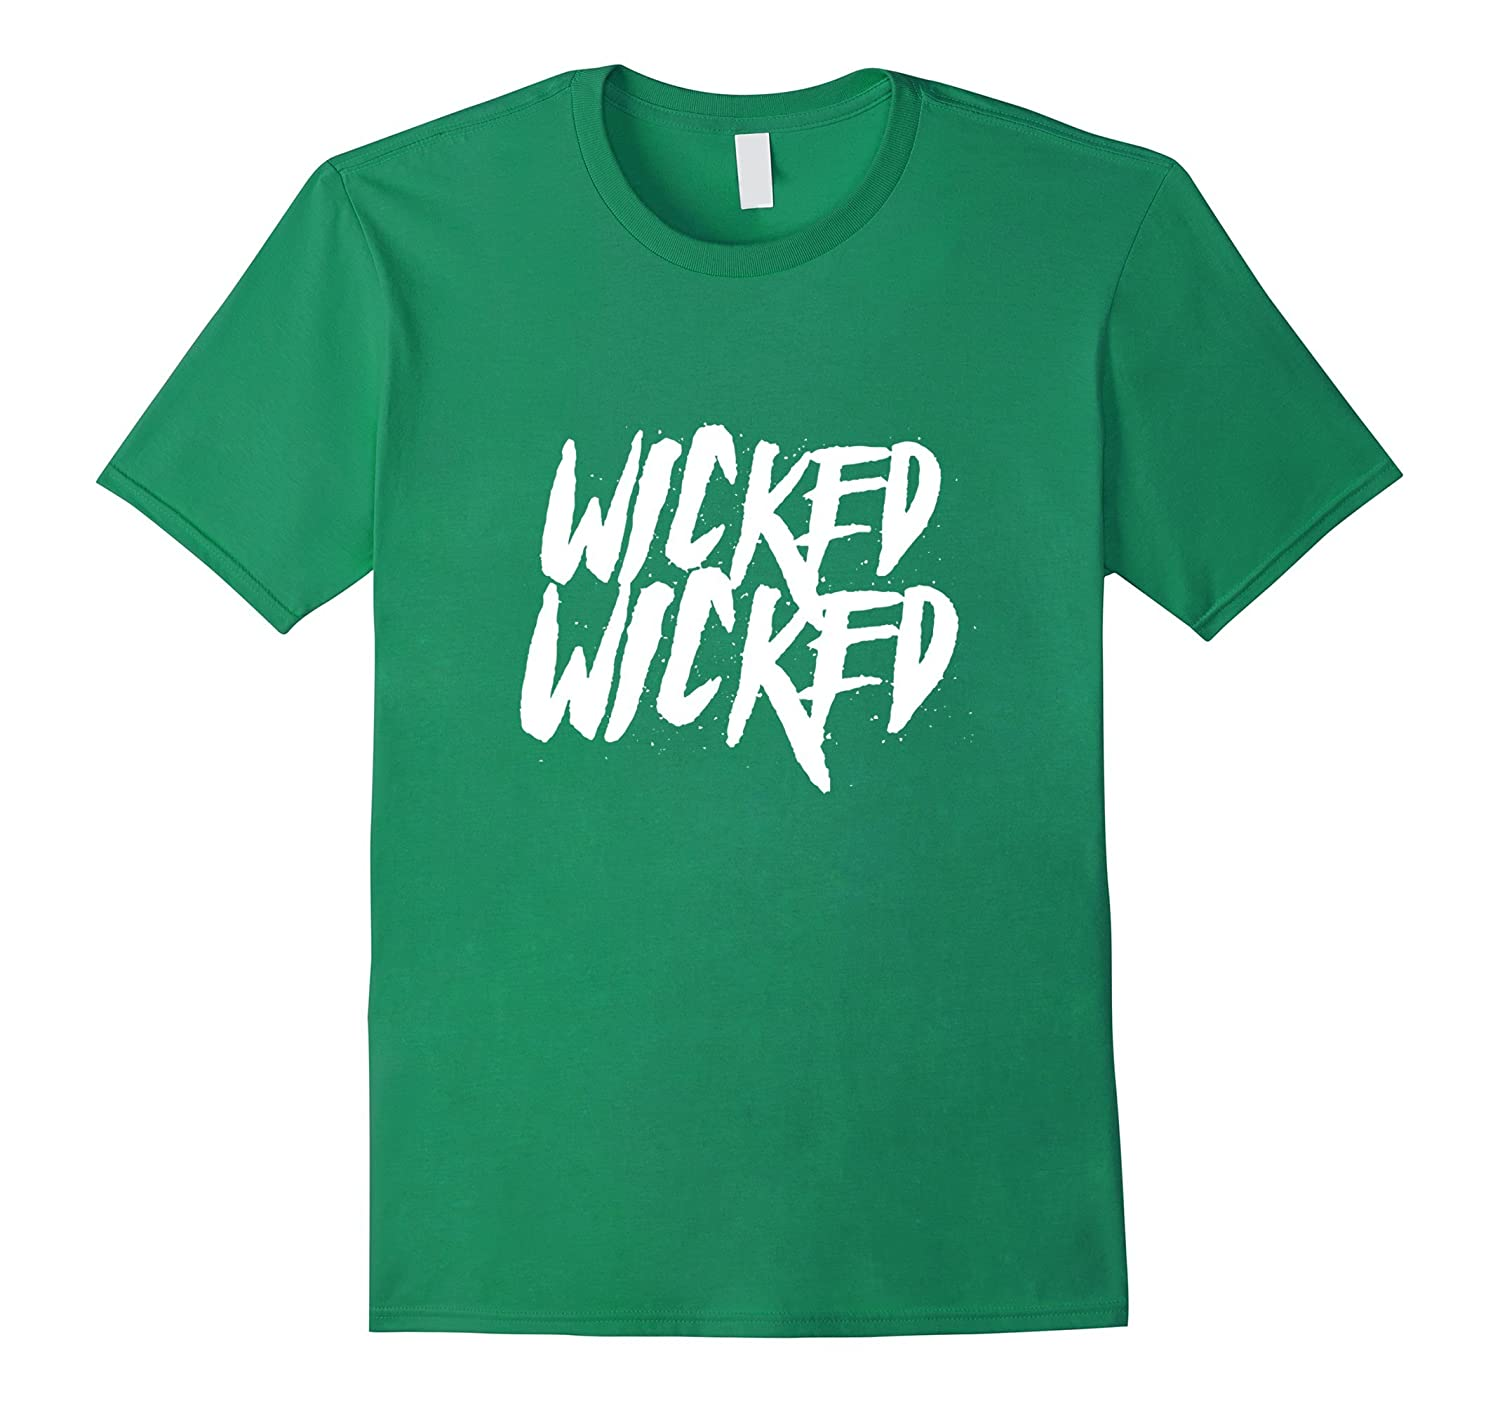 Wicked Wicked Unruly T-Shirt-RT